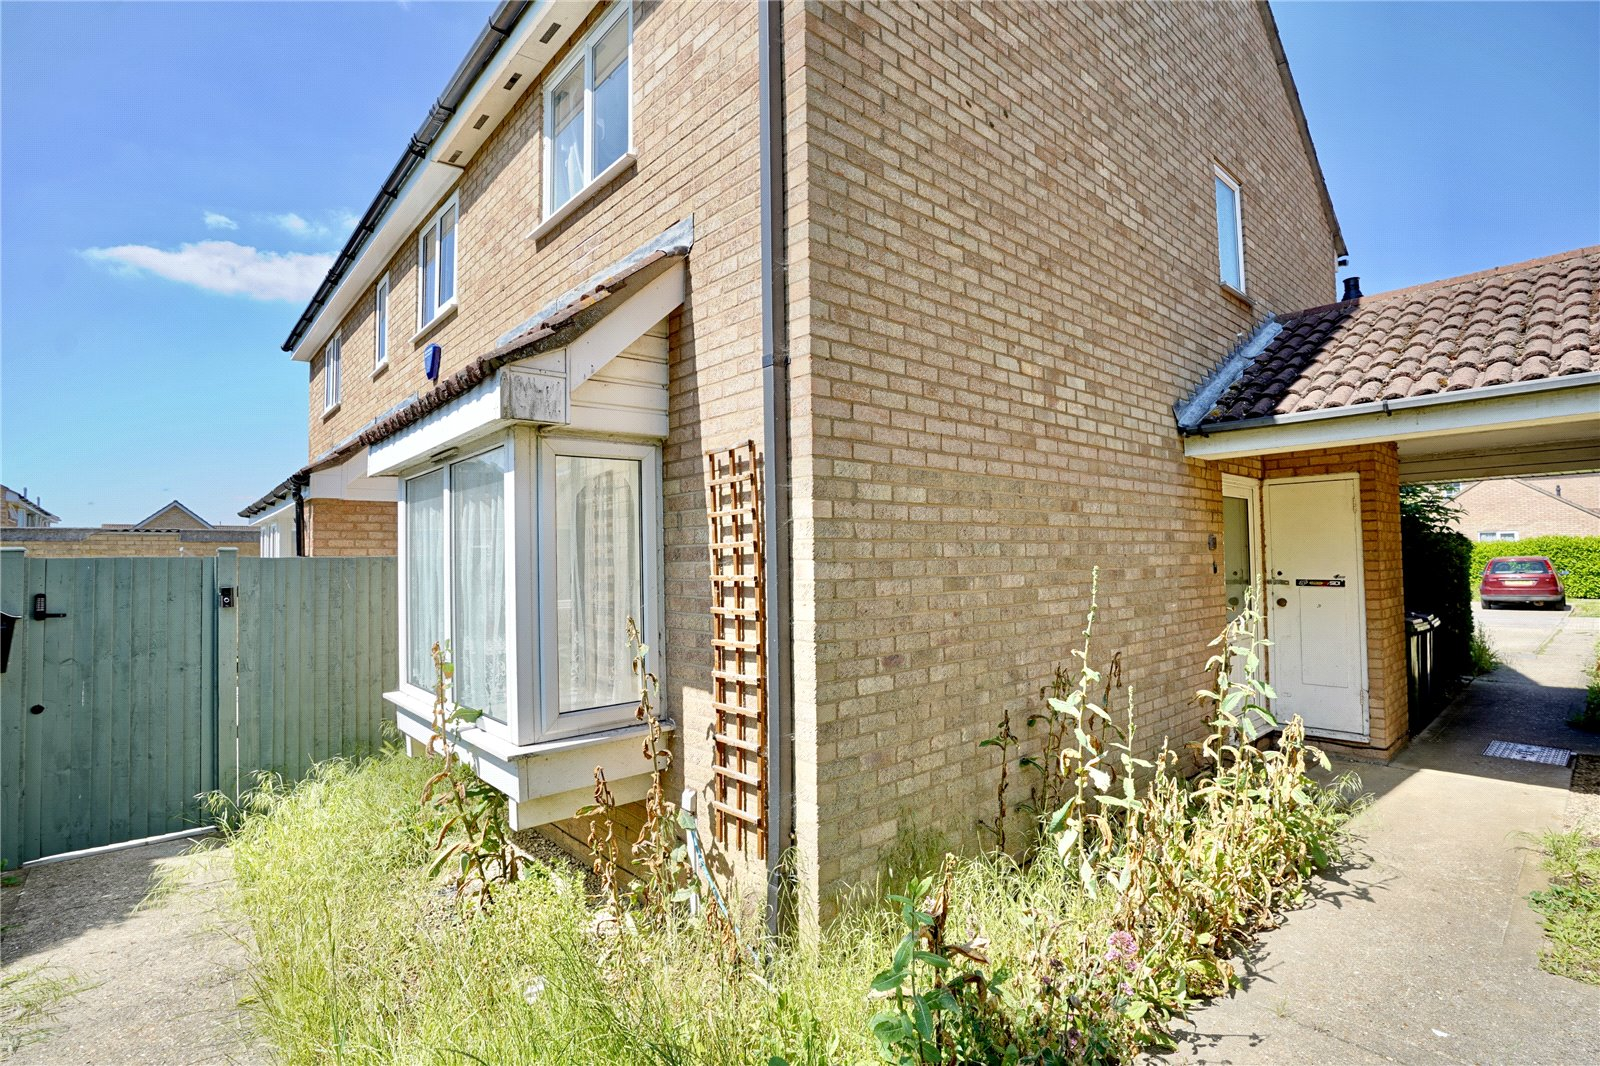 2 bed house for sale in Roe Green, Eaton Socon  - Property Image 1